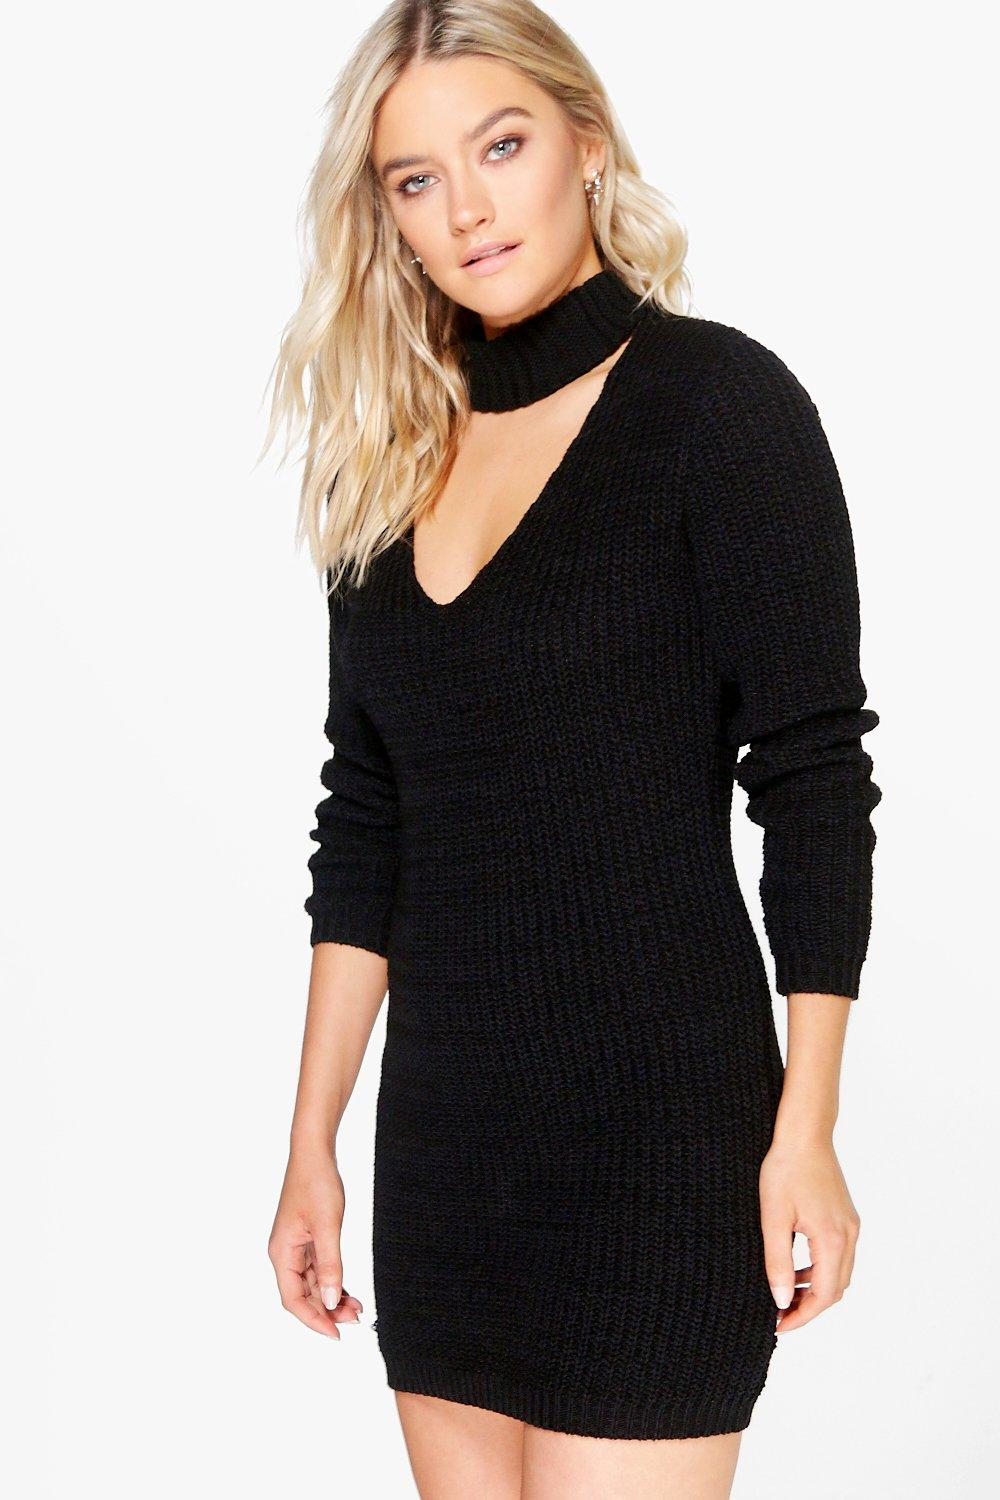 Everyday clothing for women